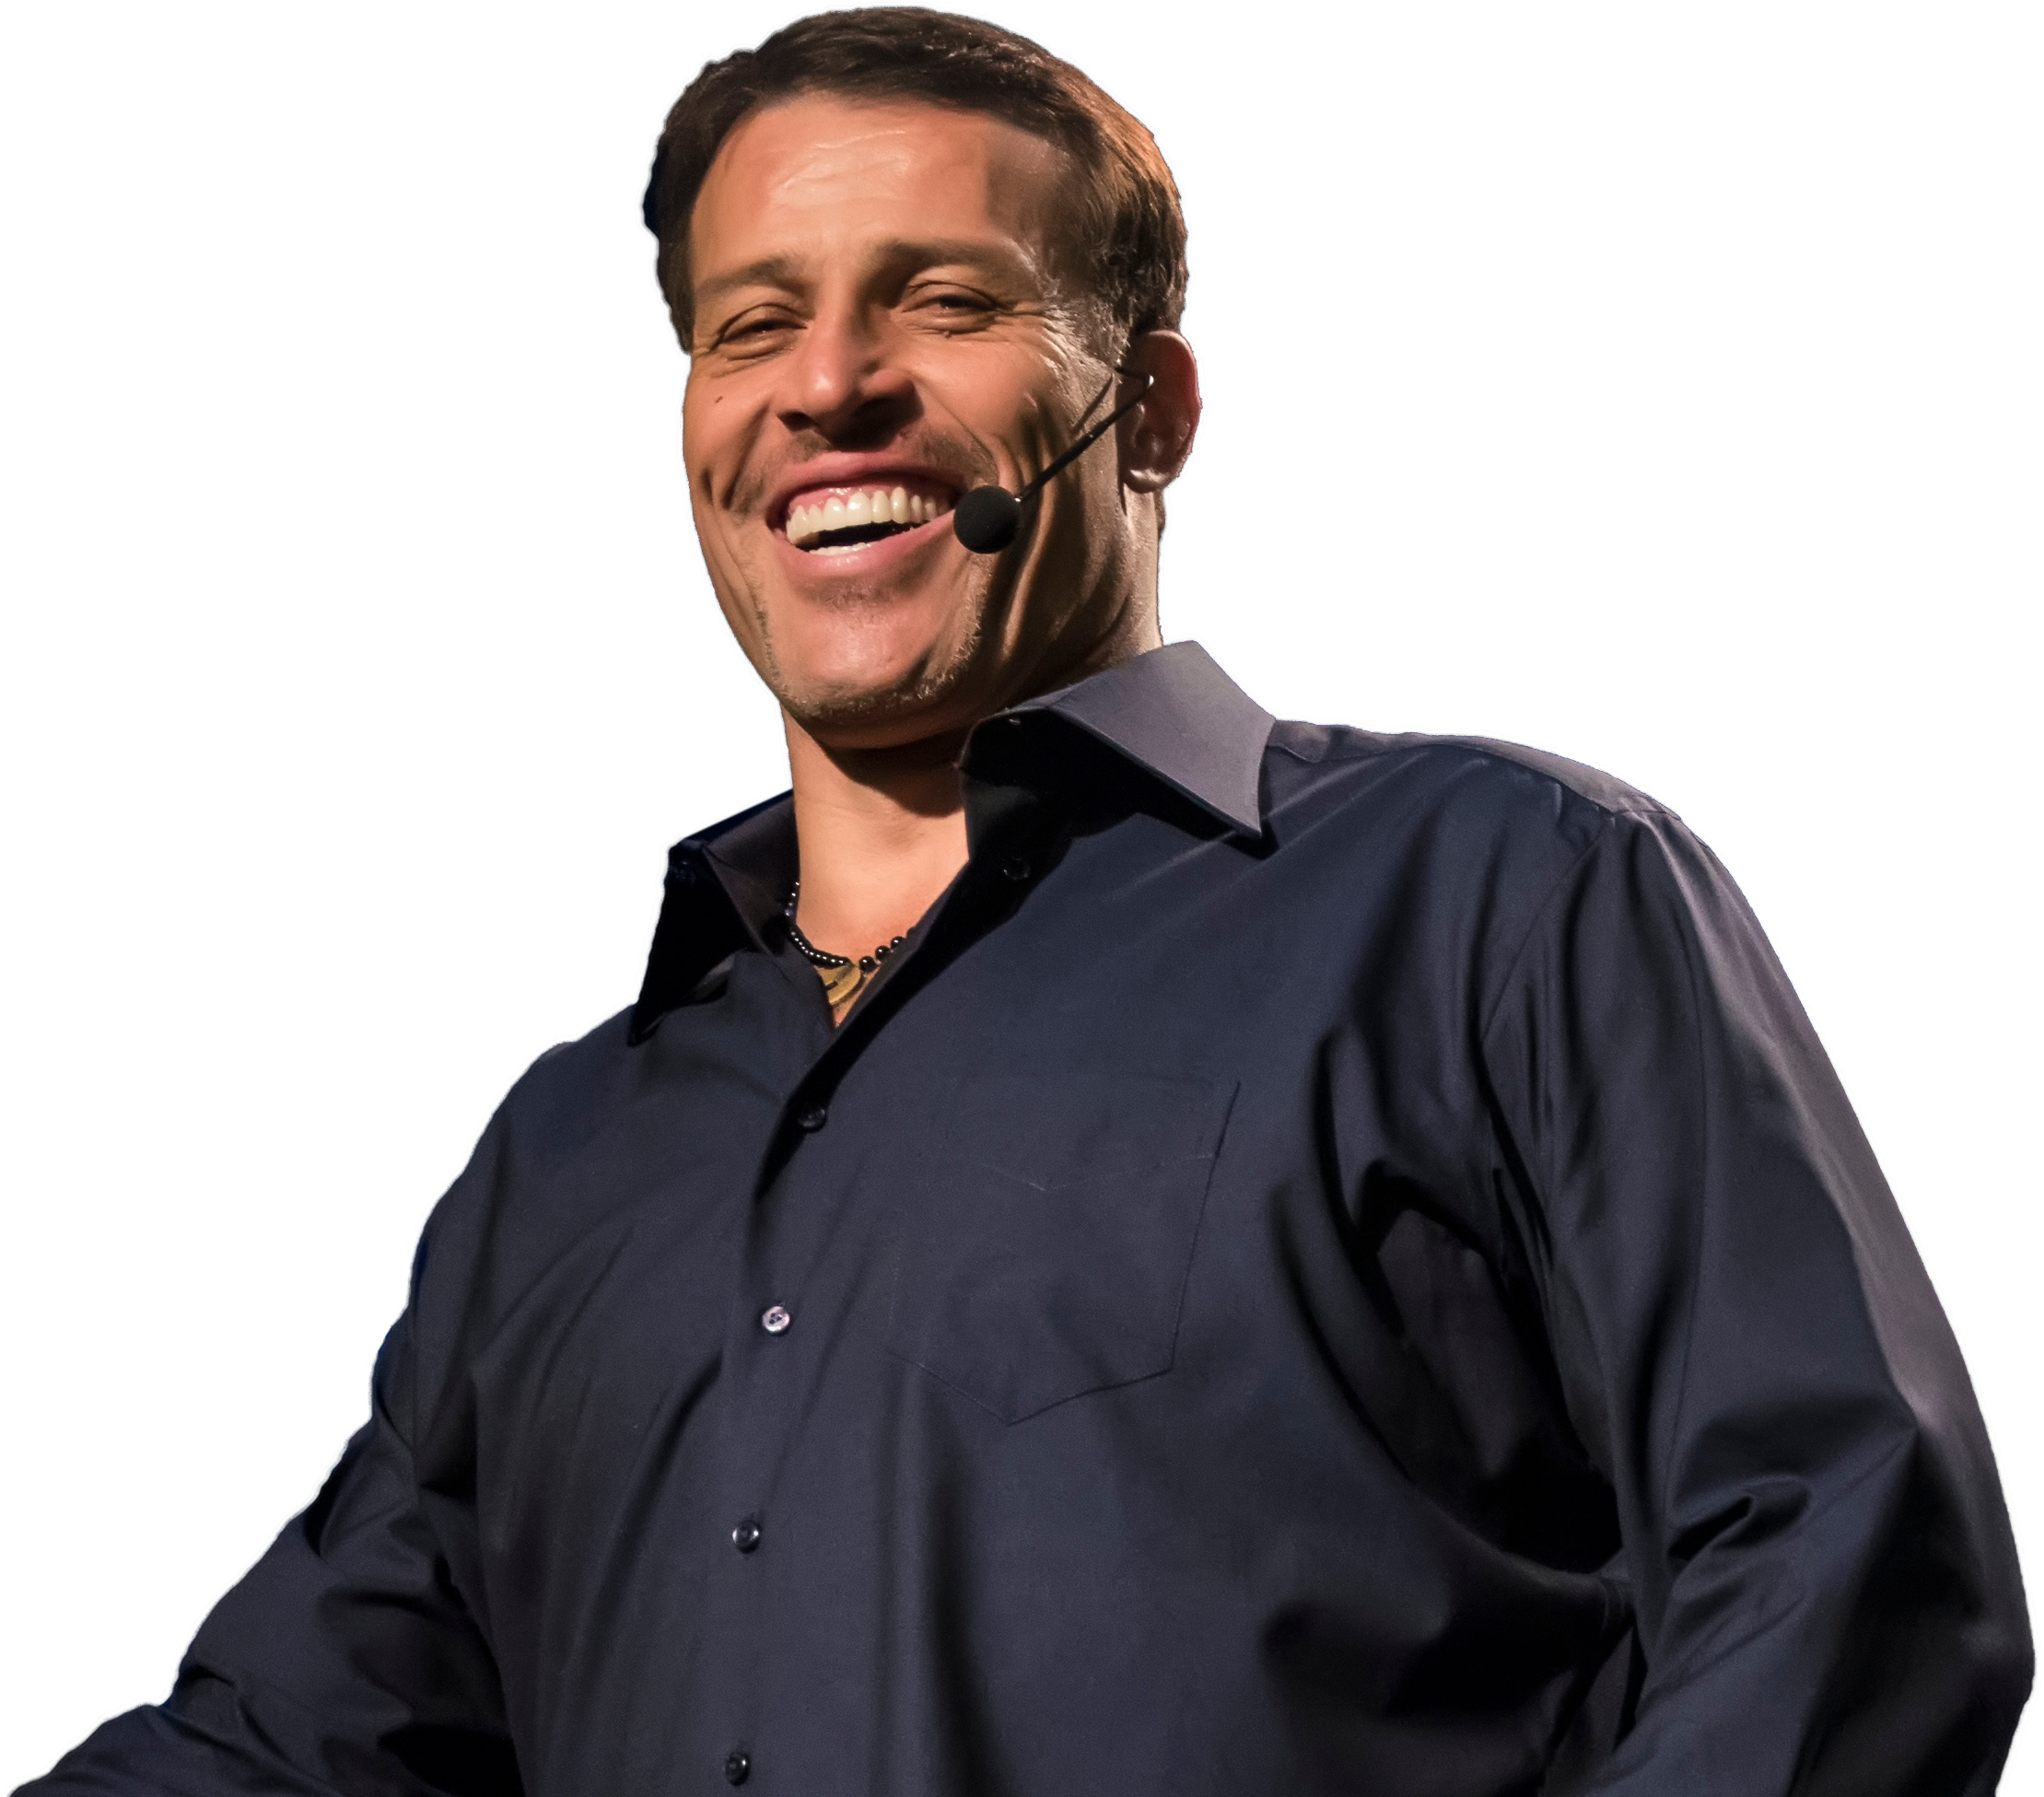 Tony Robbins About